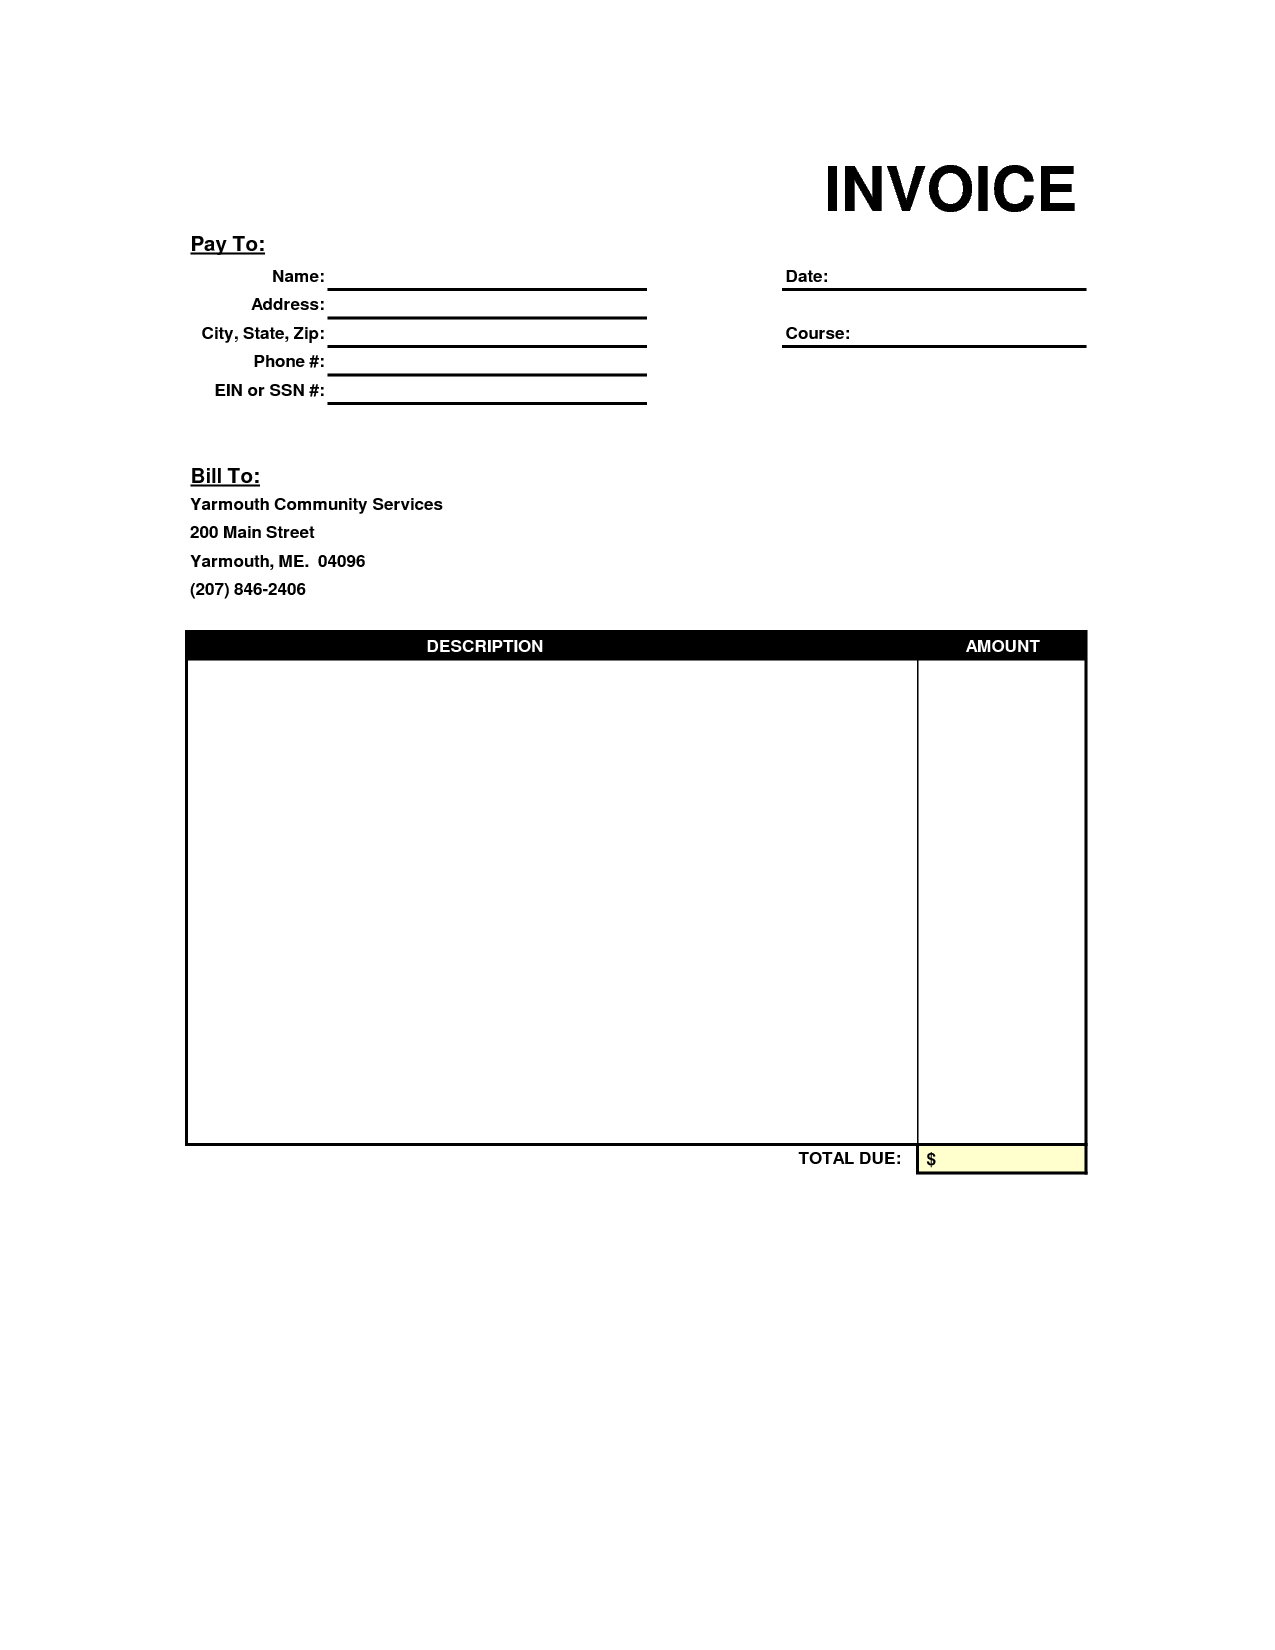 Bill List Template and Invoice Template Blank Free to Do List